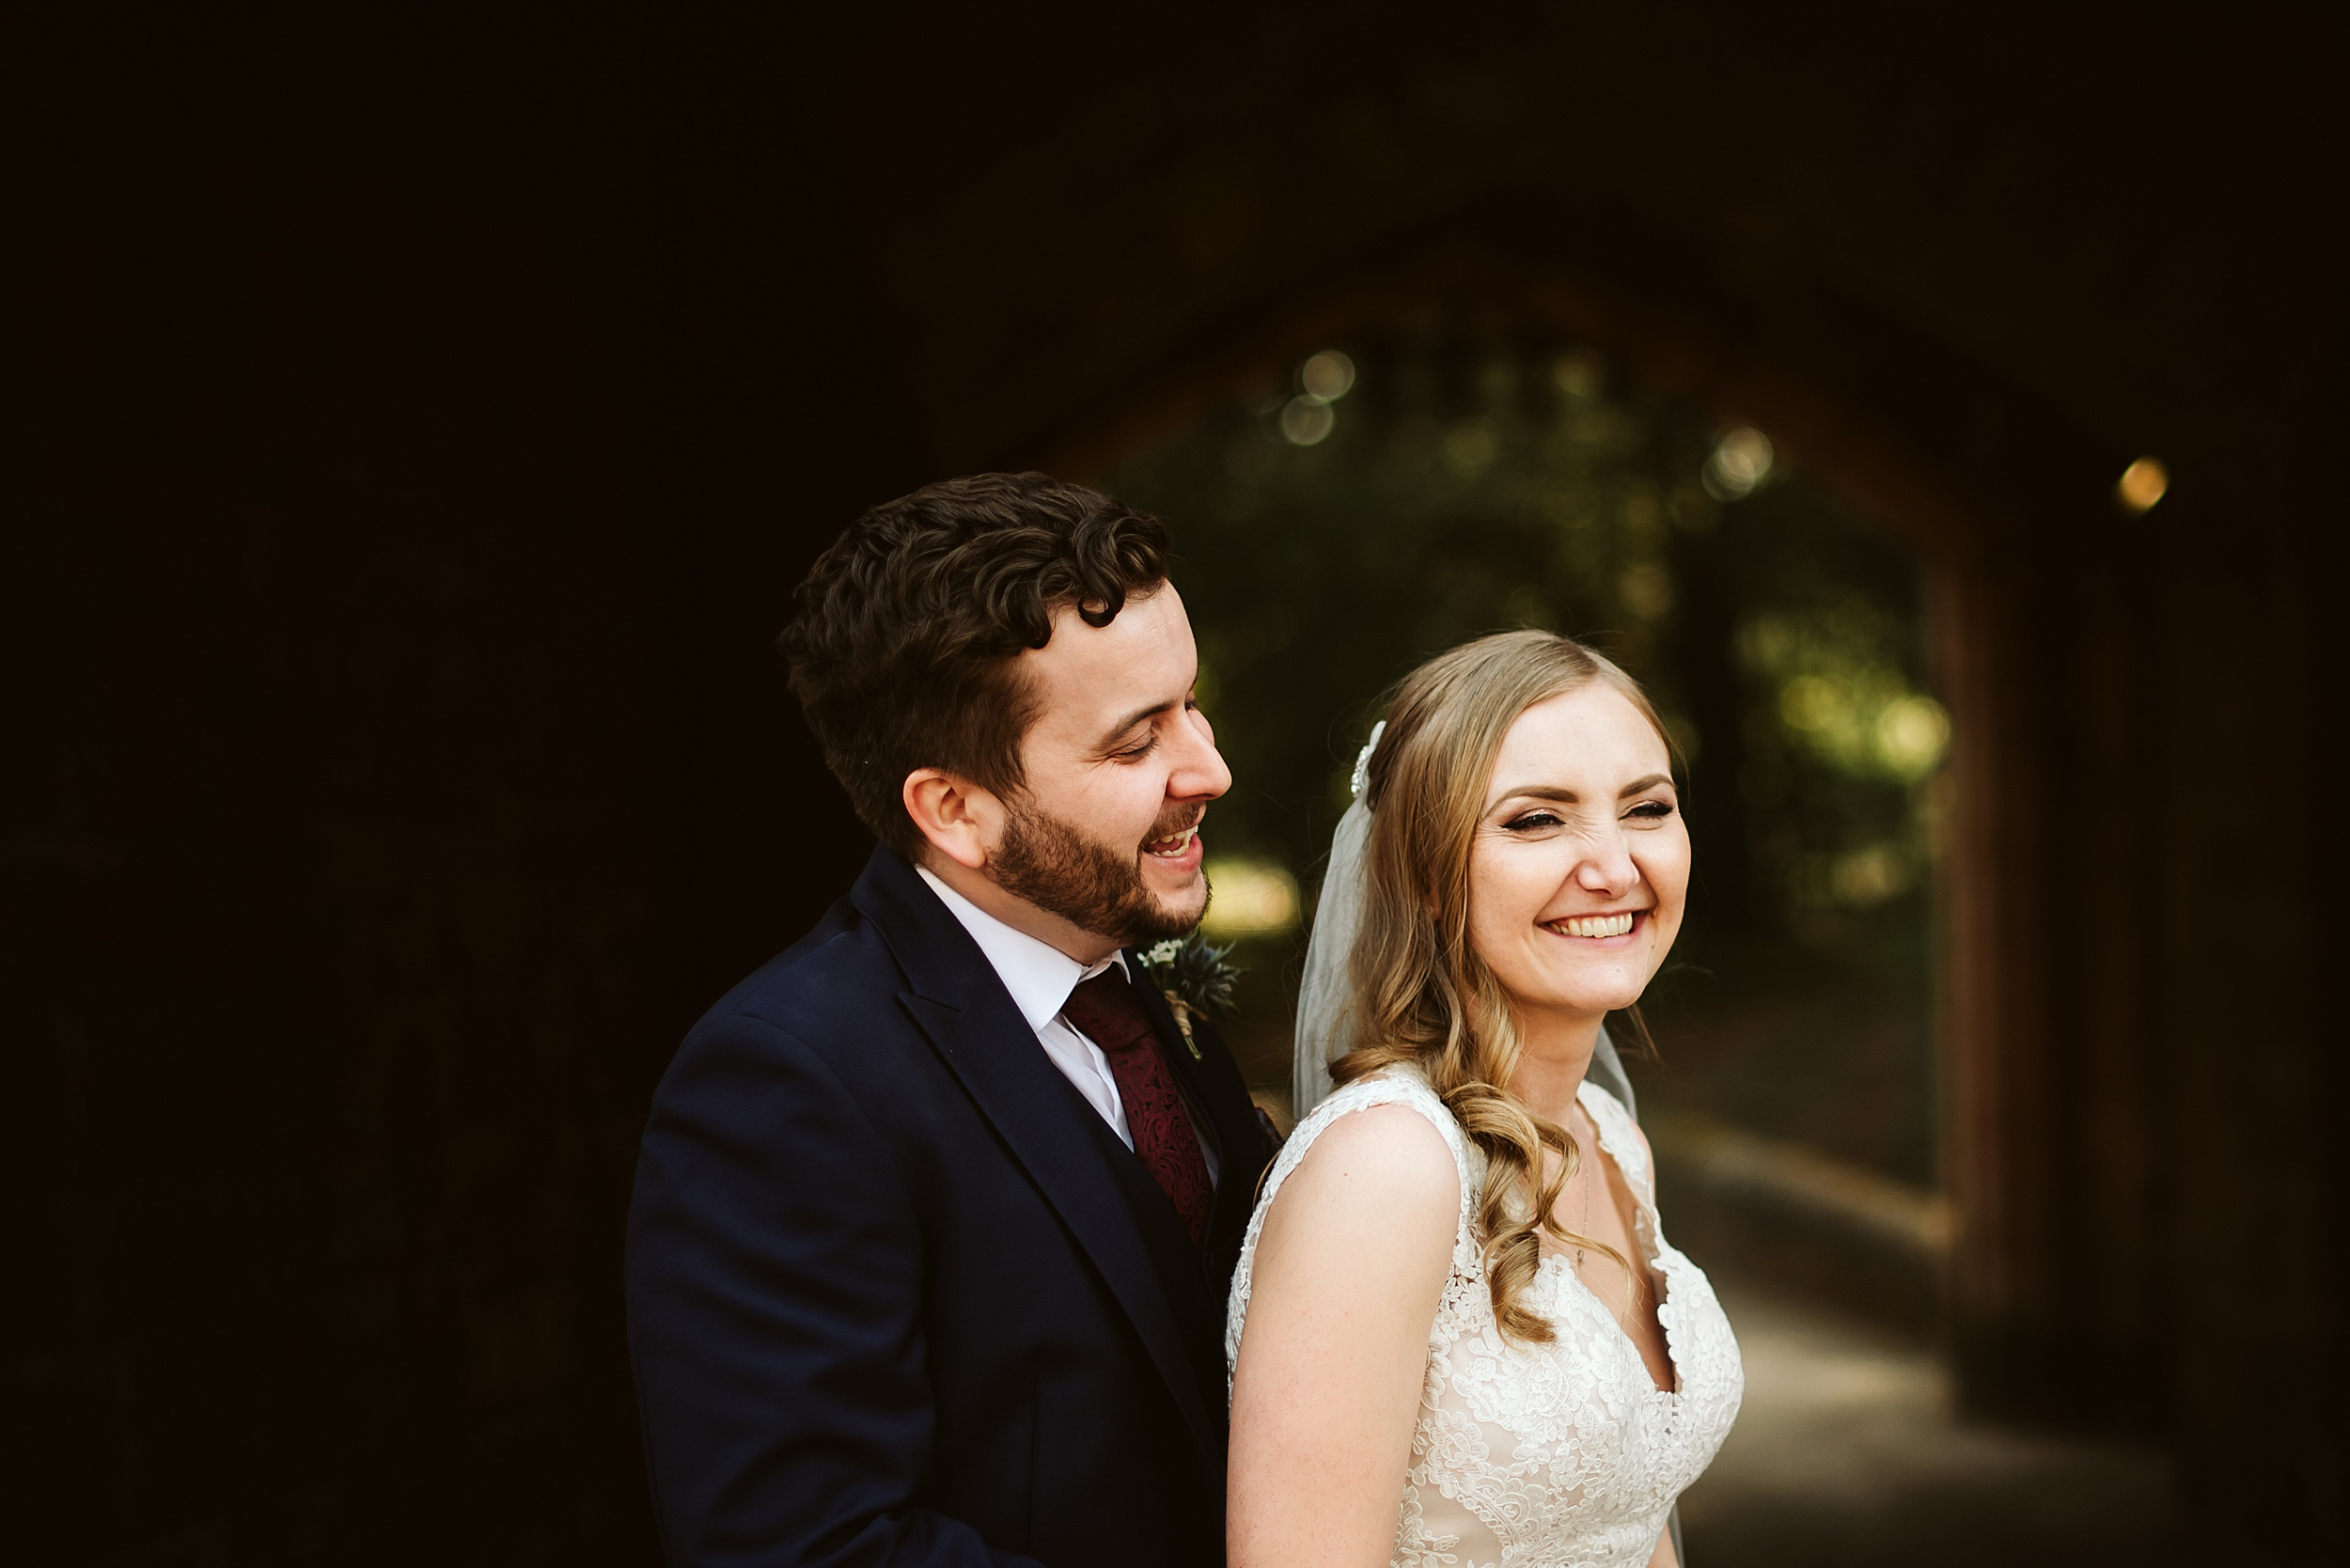 Peckforton_Castle_Cheshire_Toronto_Wedding_Photographer_UK_Destination_Wedding_0108.jpg